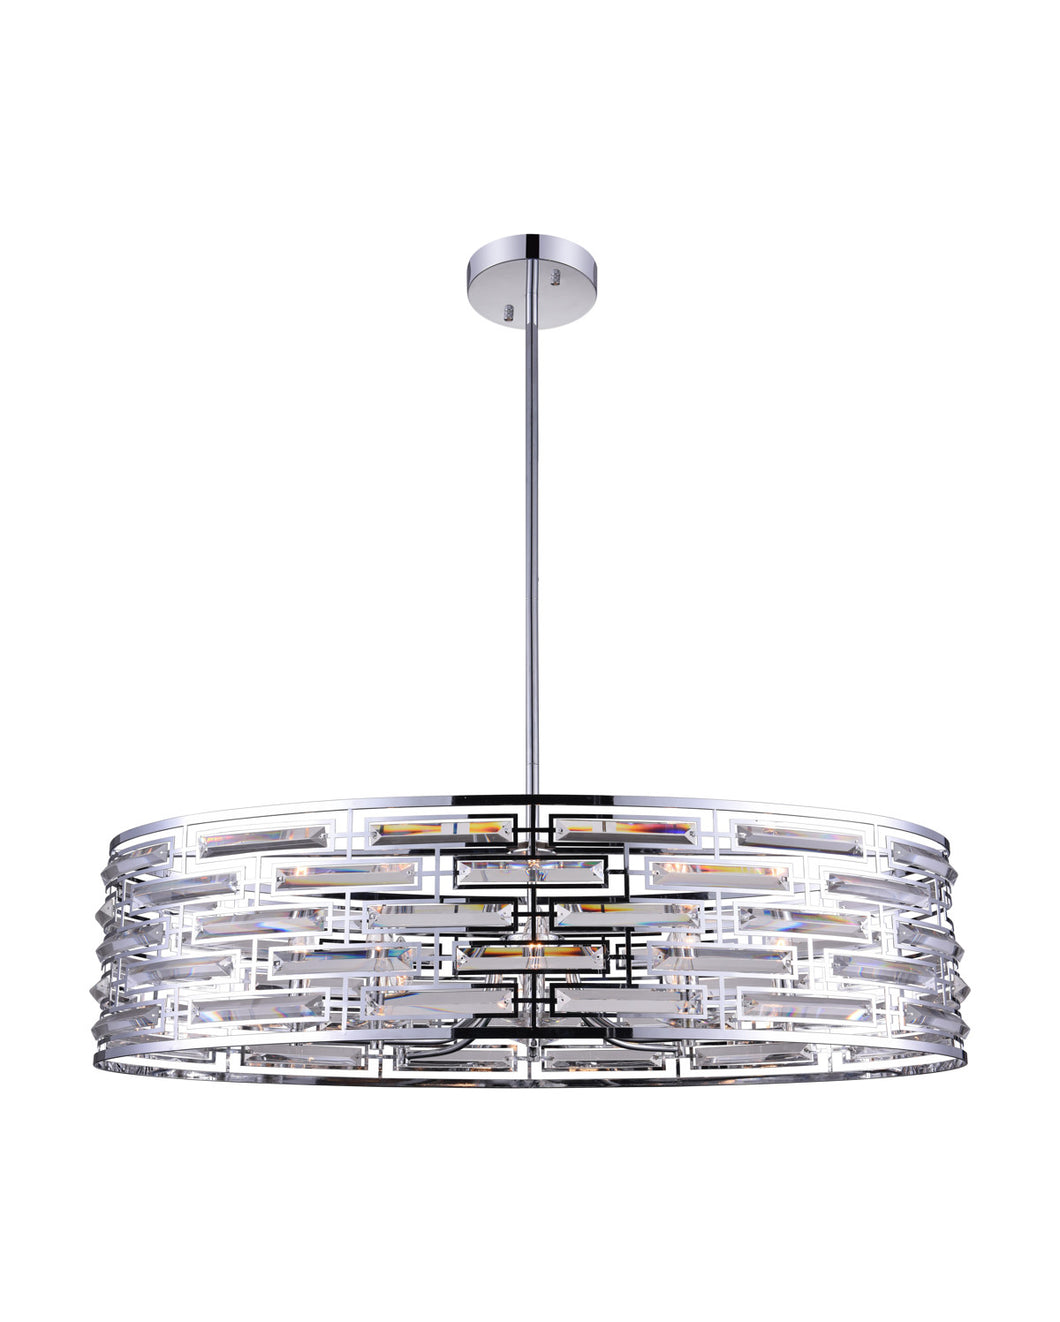 8 Light Drum Shade Island Light with Chrome finish